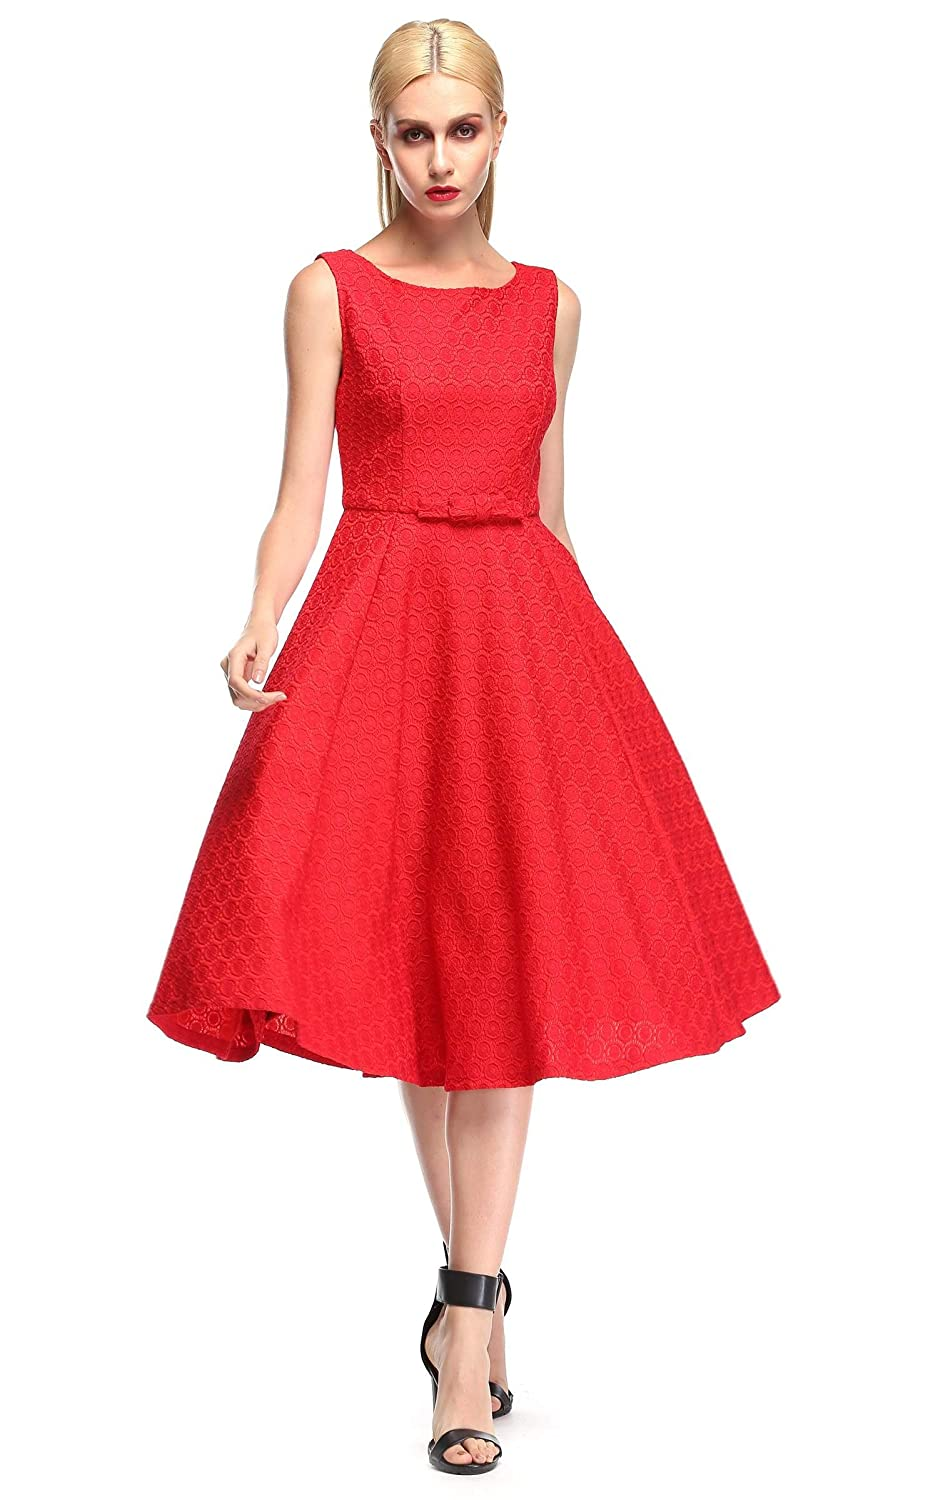 ACEVOG Damen Kleid Ärmlos Party Kleid Spitze Schlank Dress